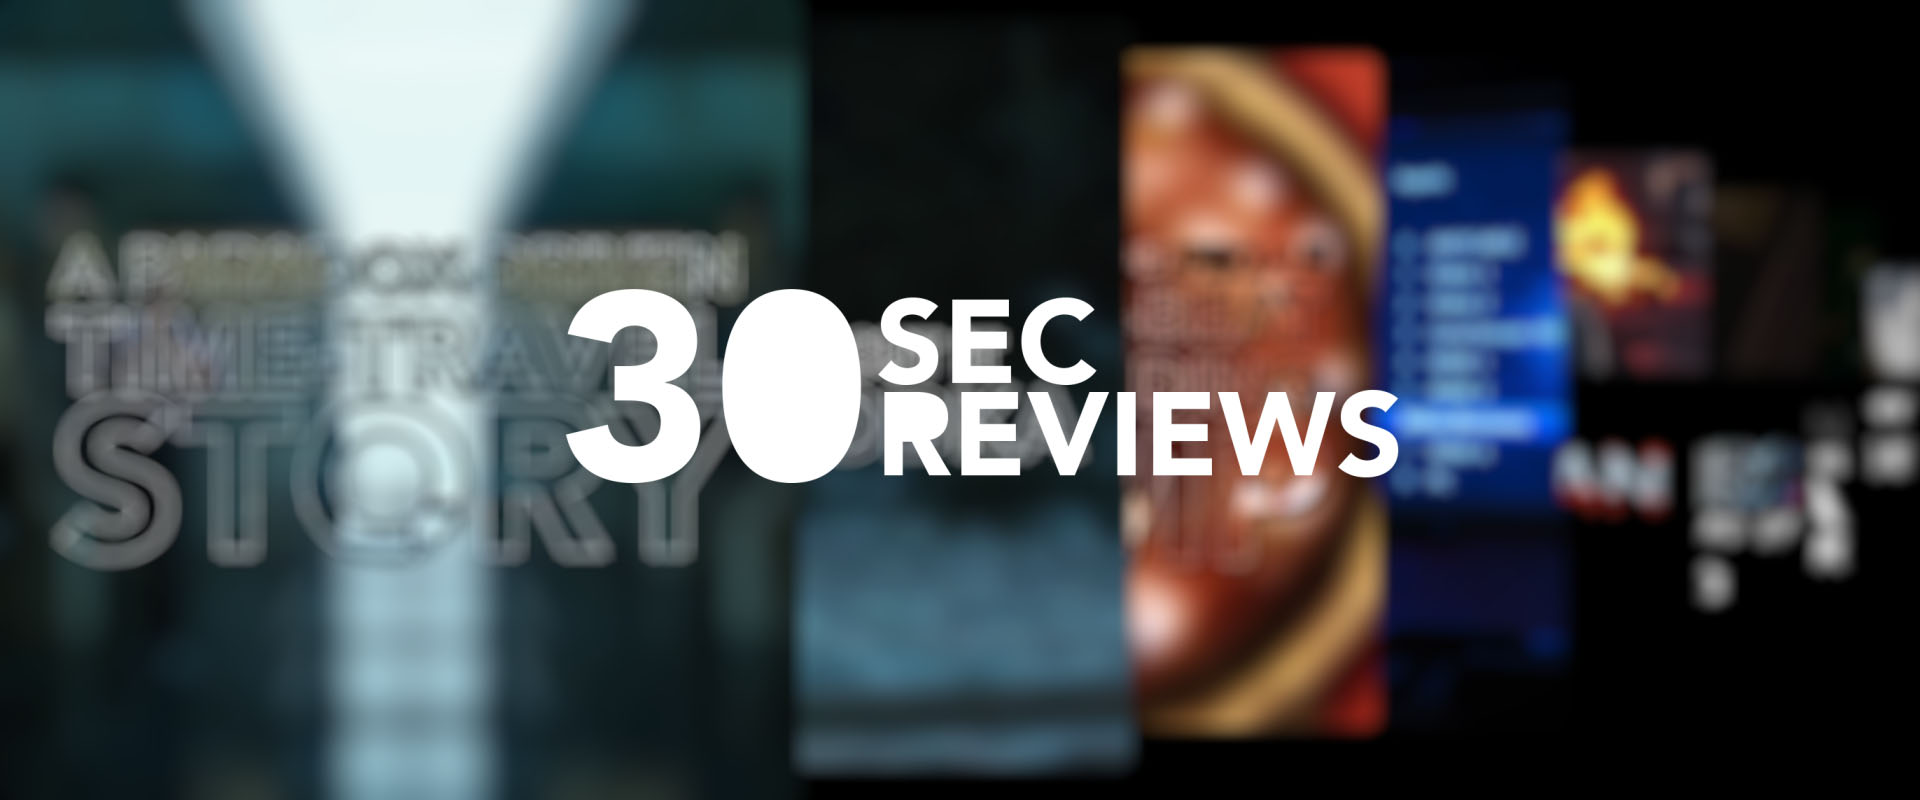 30secreviews instagram film reviews thumbnail